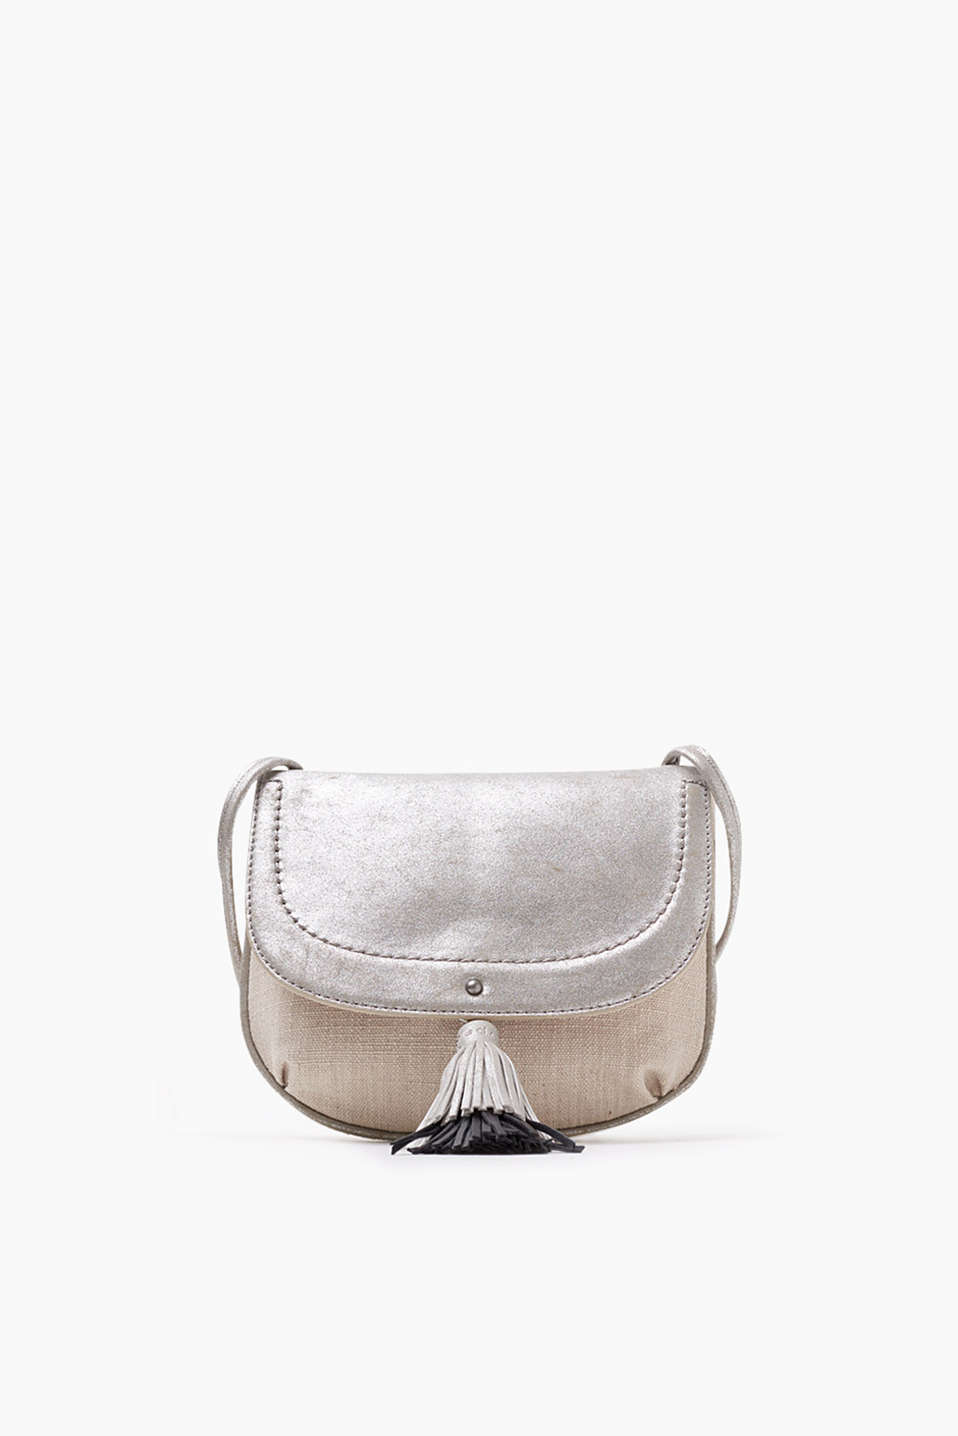 Summery shoulder bag in an elegant material mix with two-tone tassels